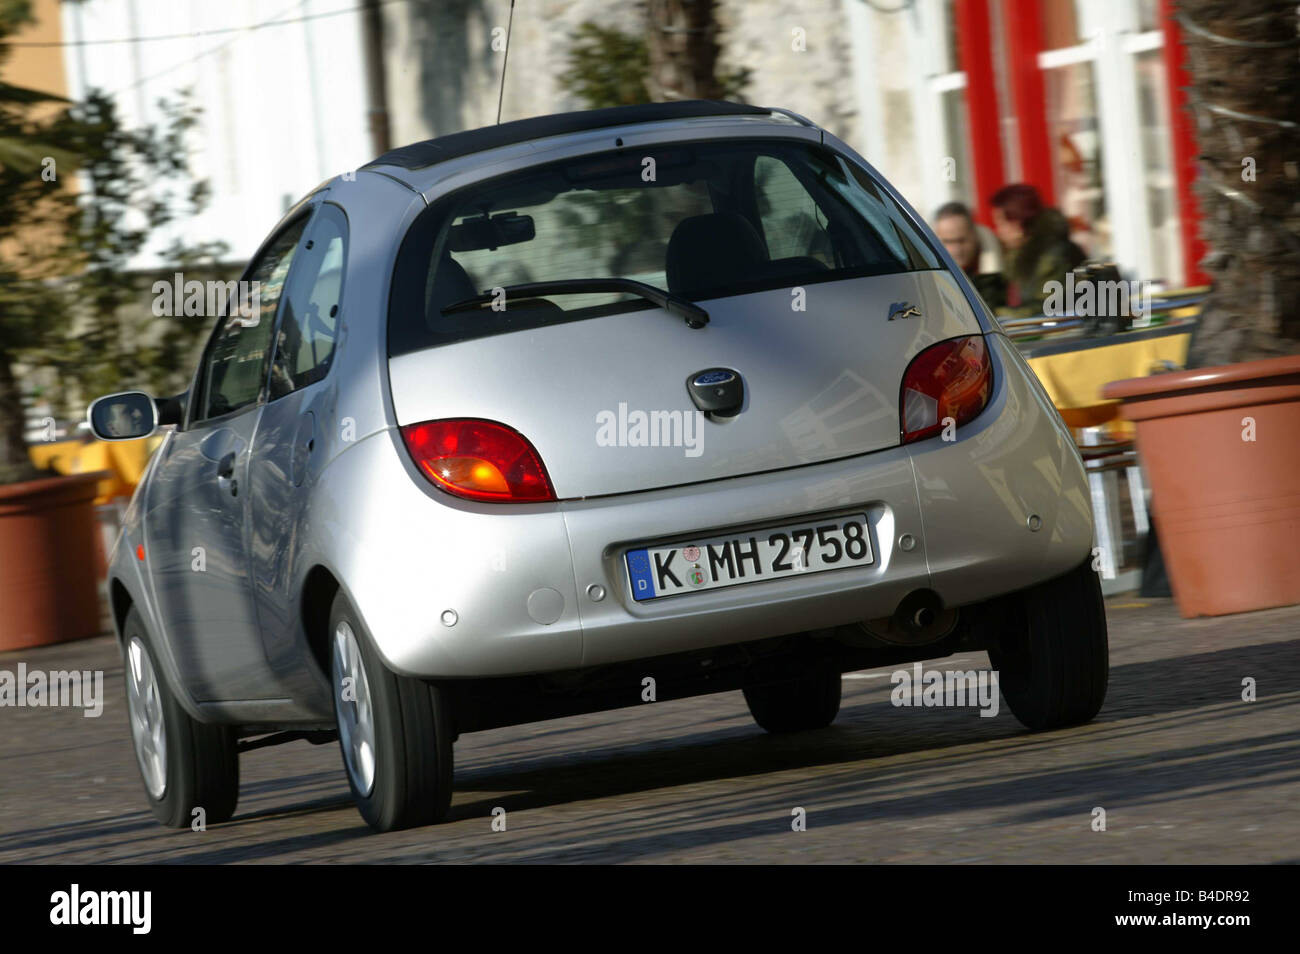 Car Ford Ka Miniapprox S Model Year  Limousine Silver Diagonal From The Back Rear View Driving City